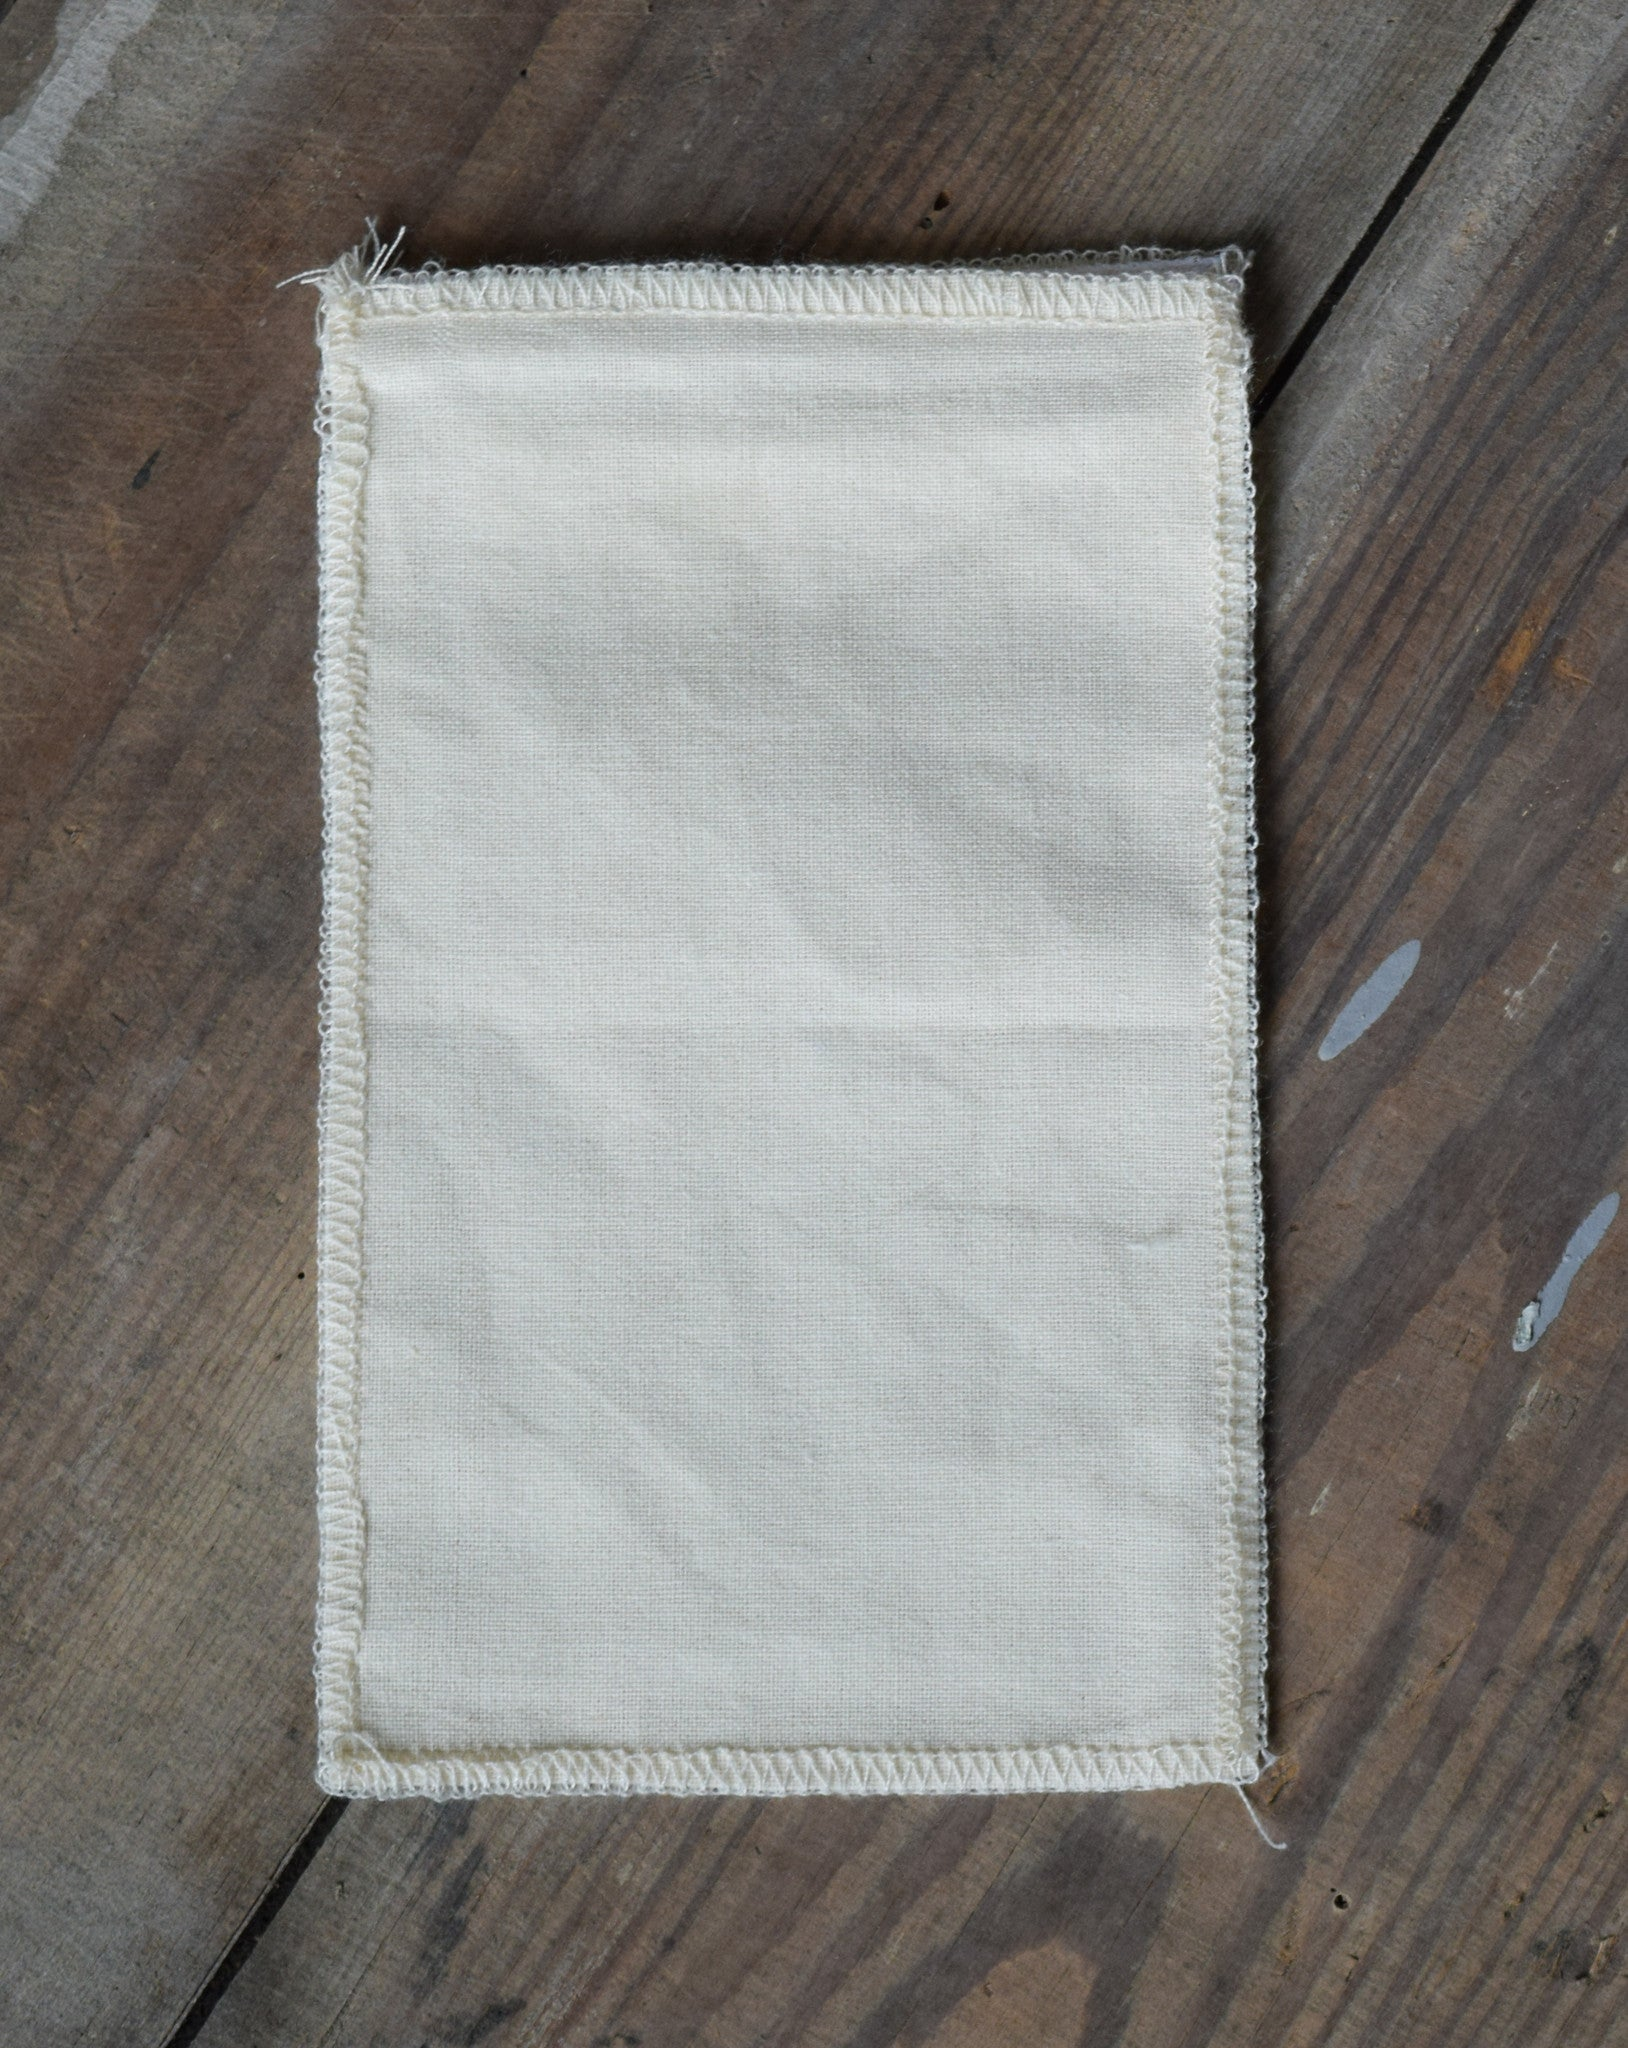 Ivory Sachet Bag - Set of 4